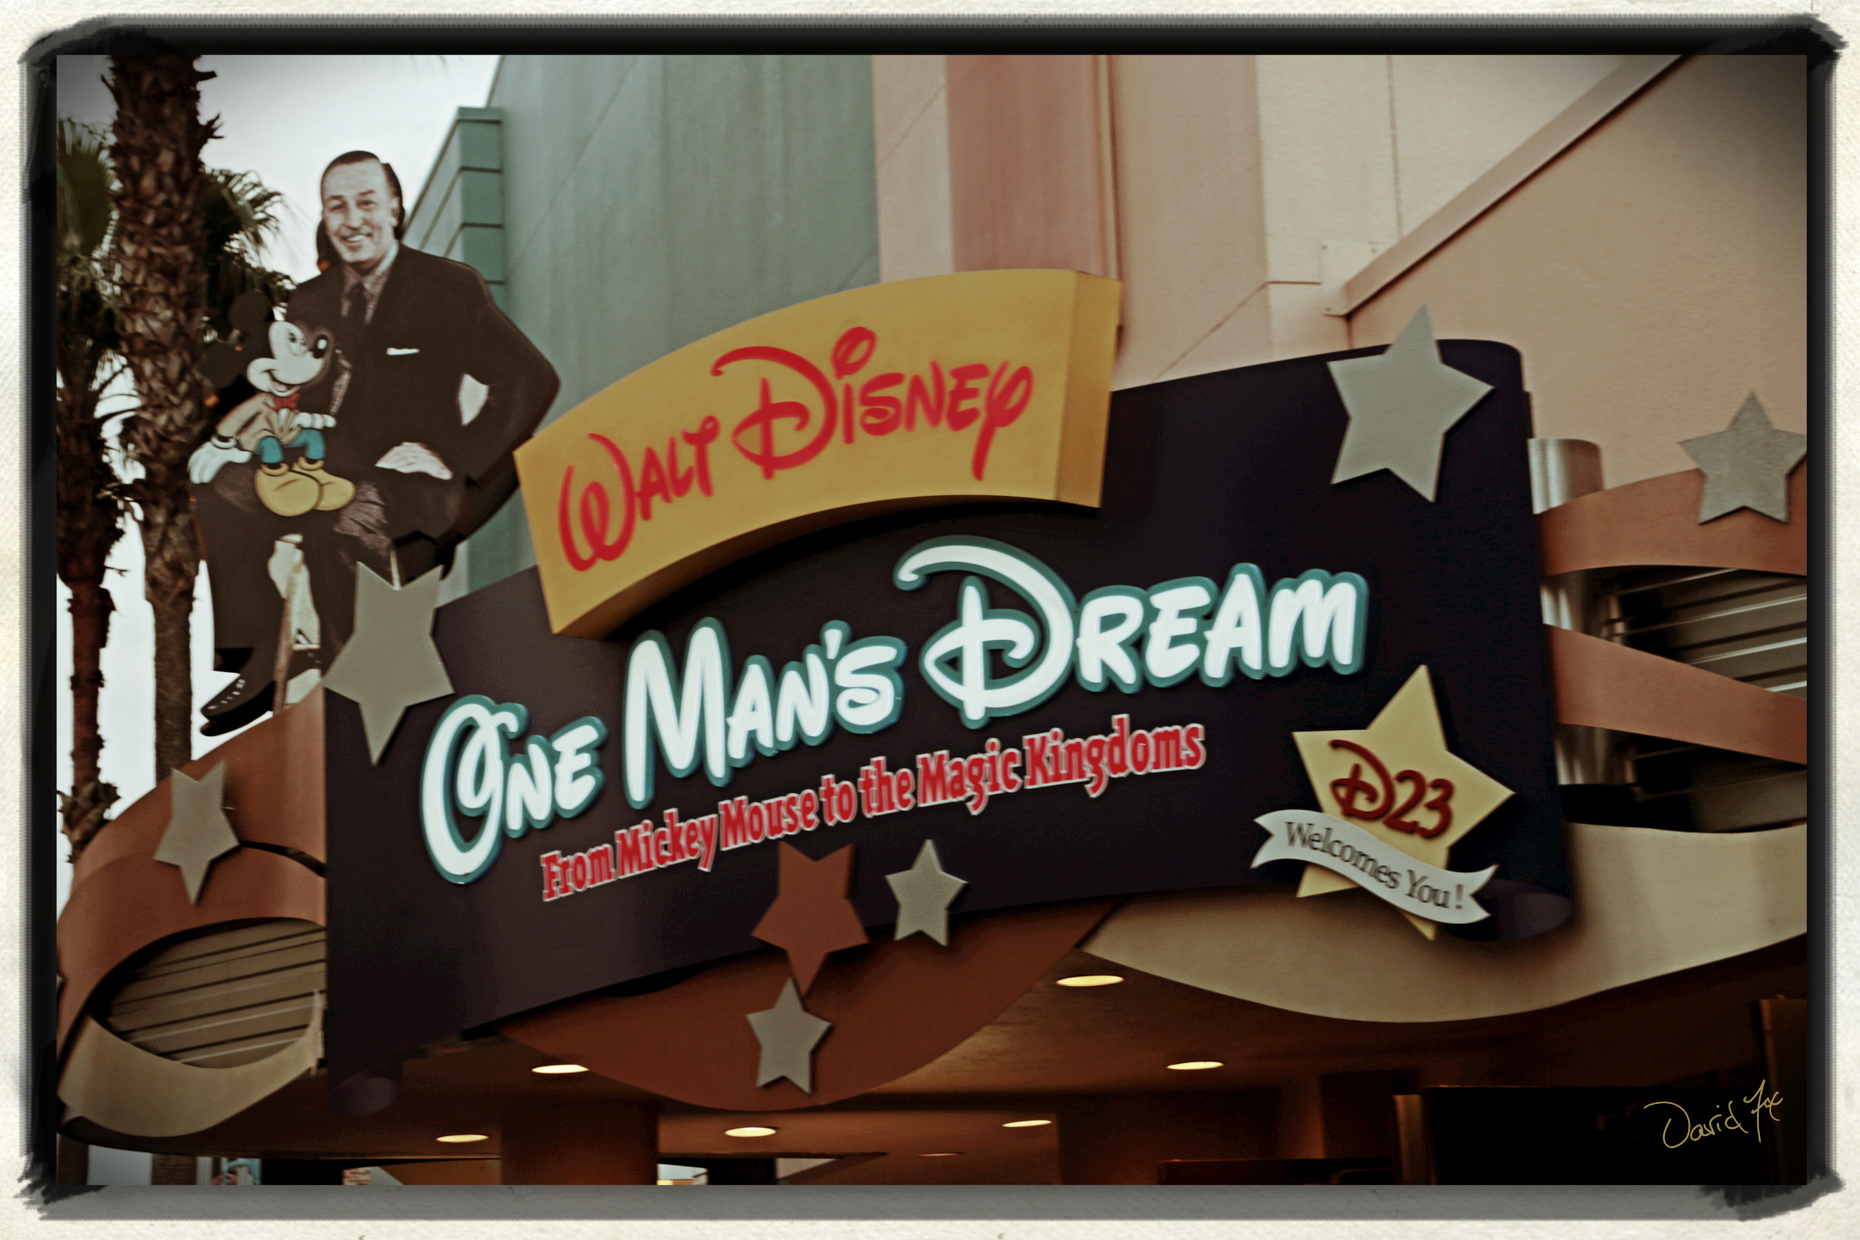 Disney Entrance One Mans Dream by David Fox Photographer